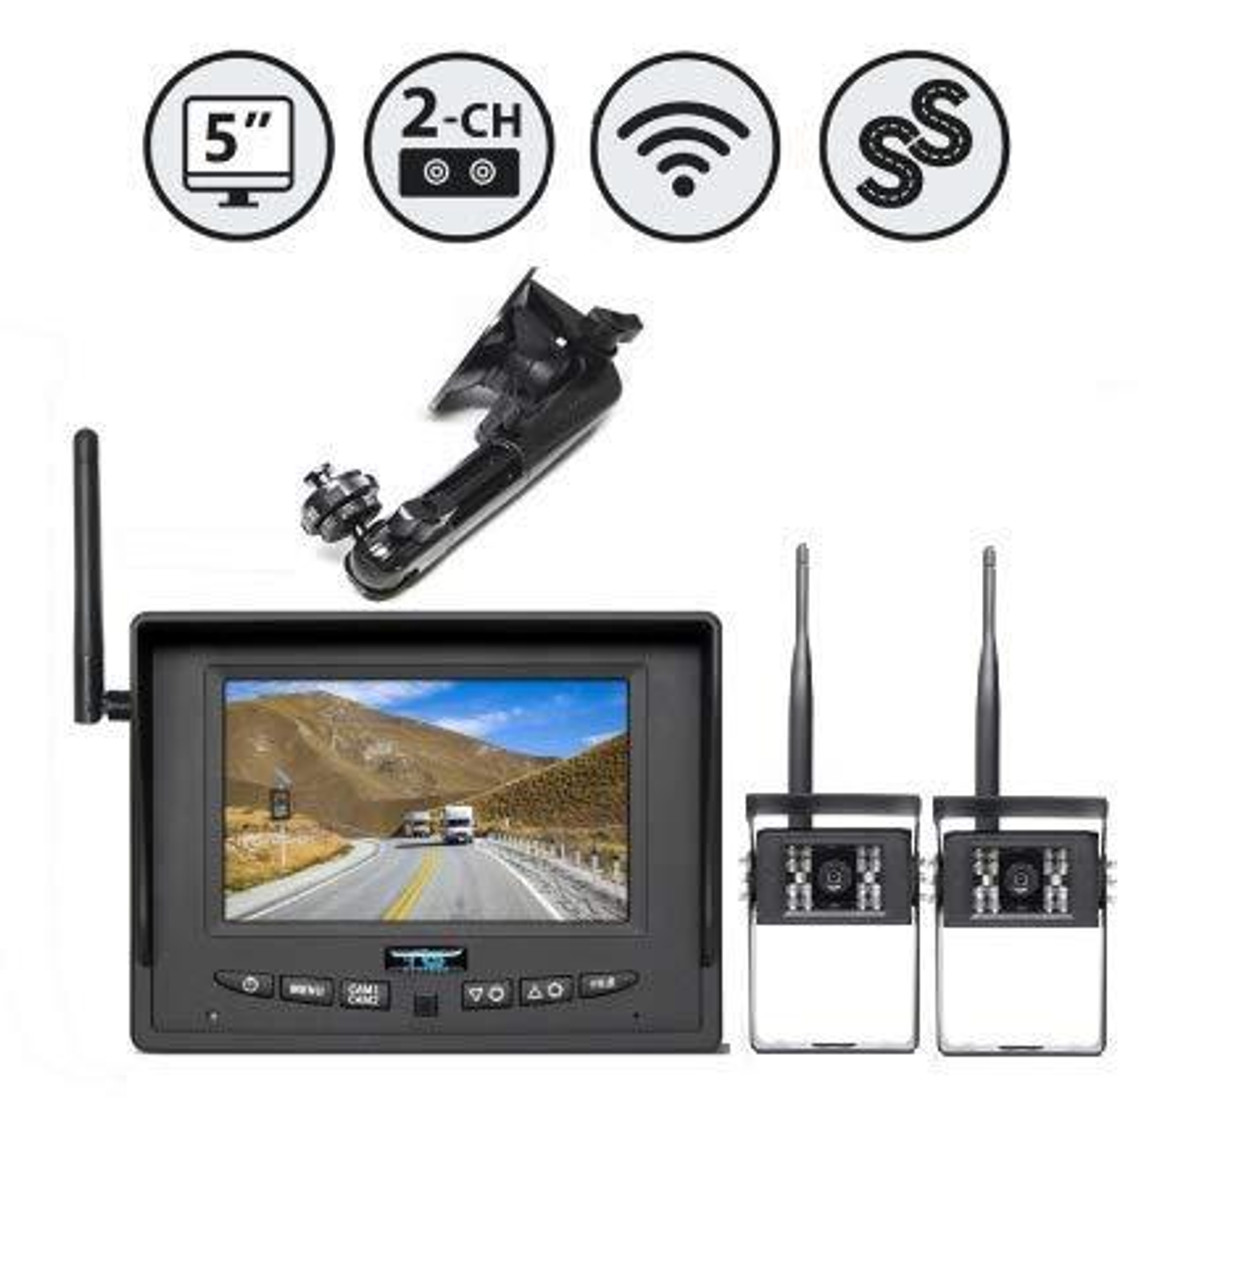 """5"""" Wireless Display (2 Ch.), 2 x Wireless Backup Camera, Suction Cup Mount"""